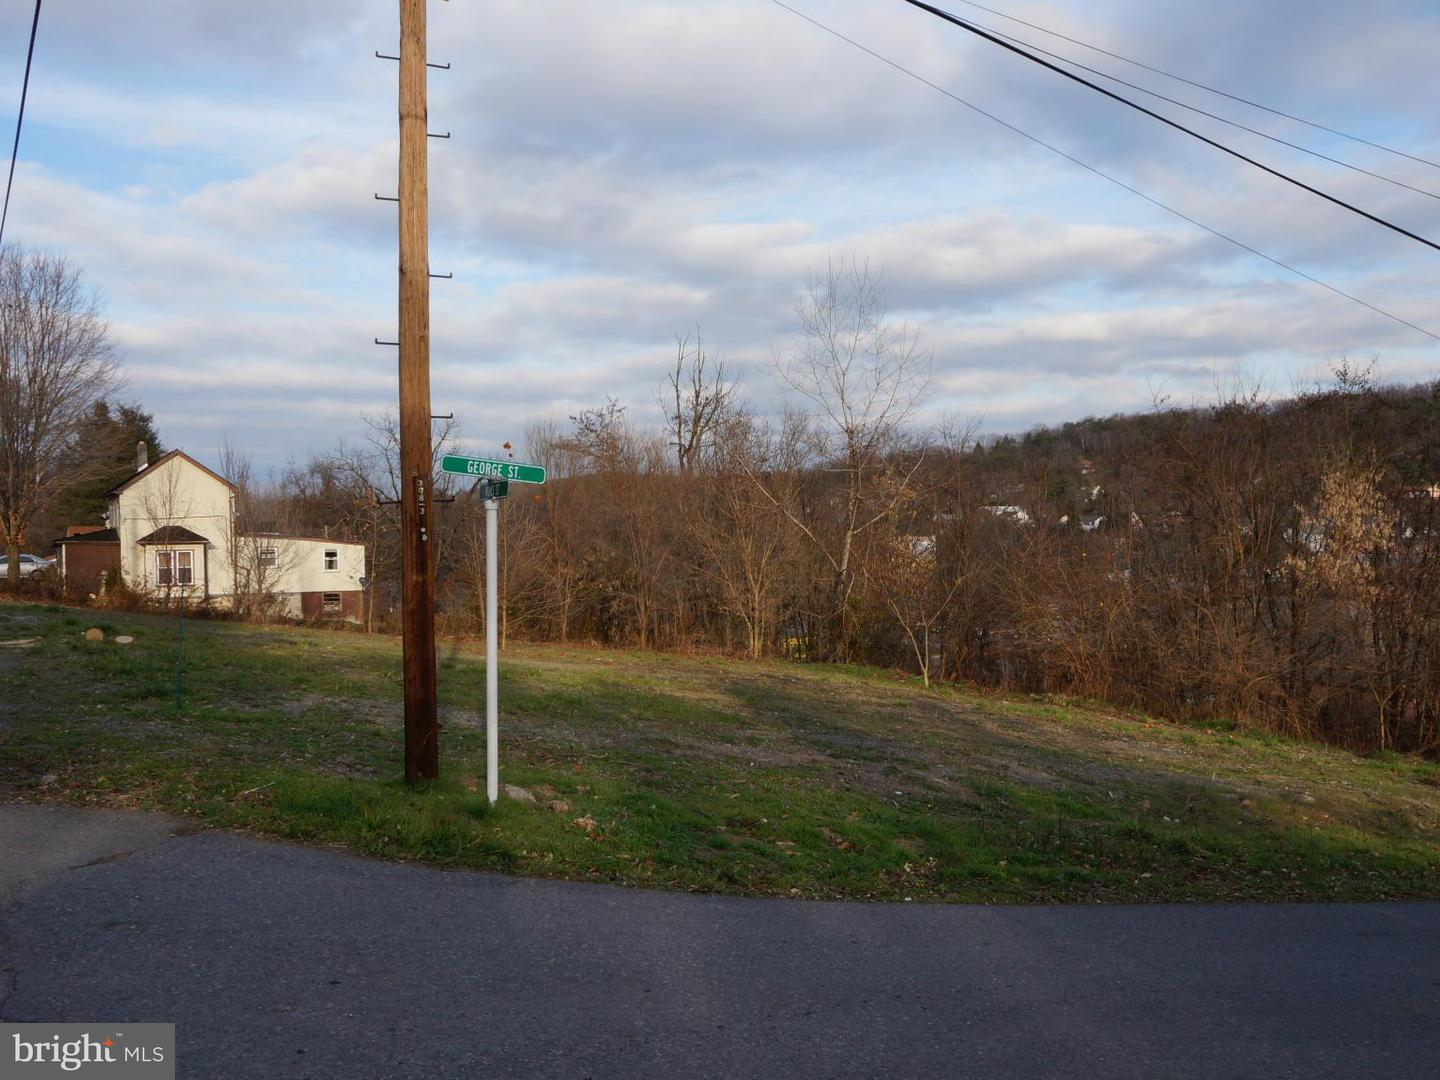 Land for Sale at Wilkes St Berkeley Springs, West Virginia 25411 United States